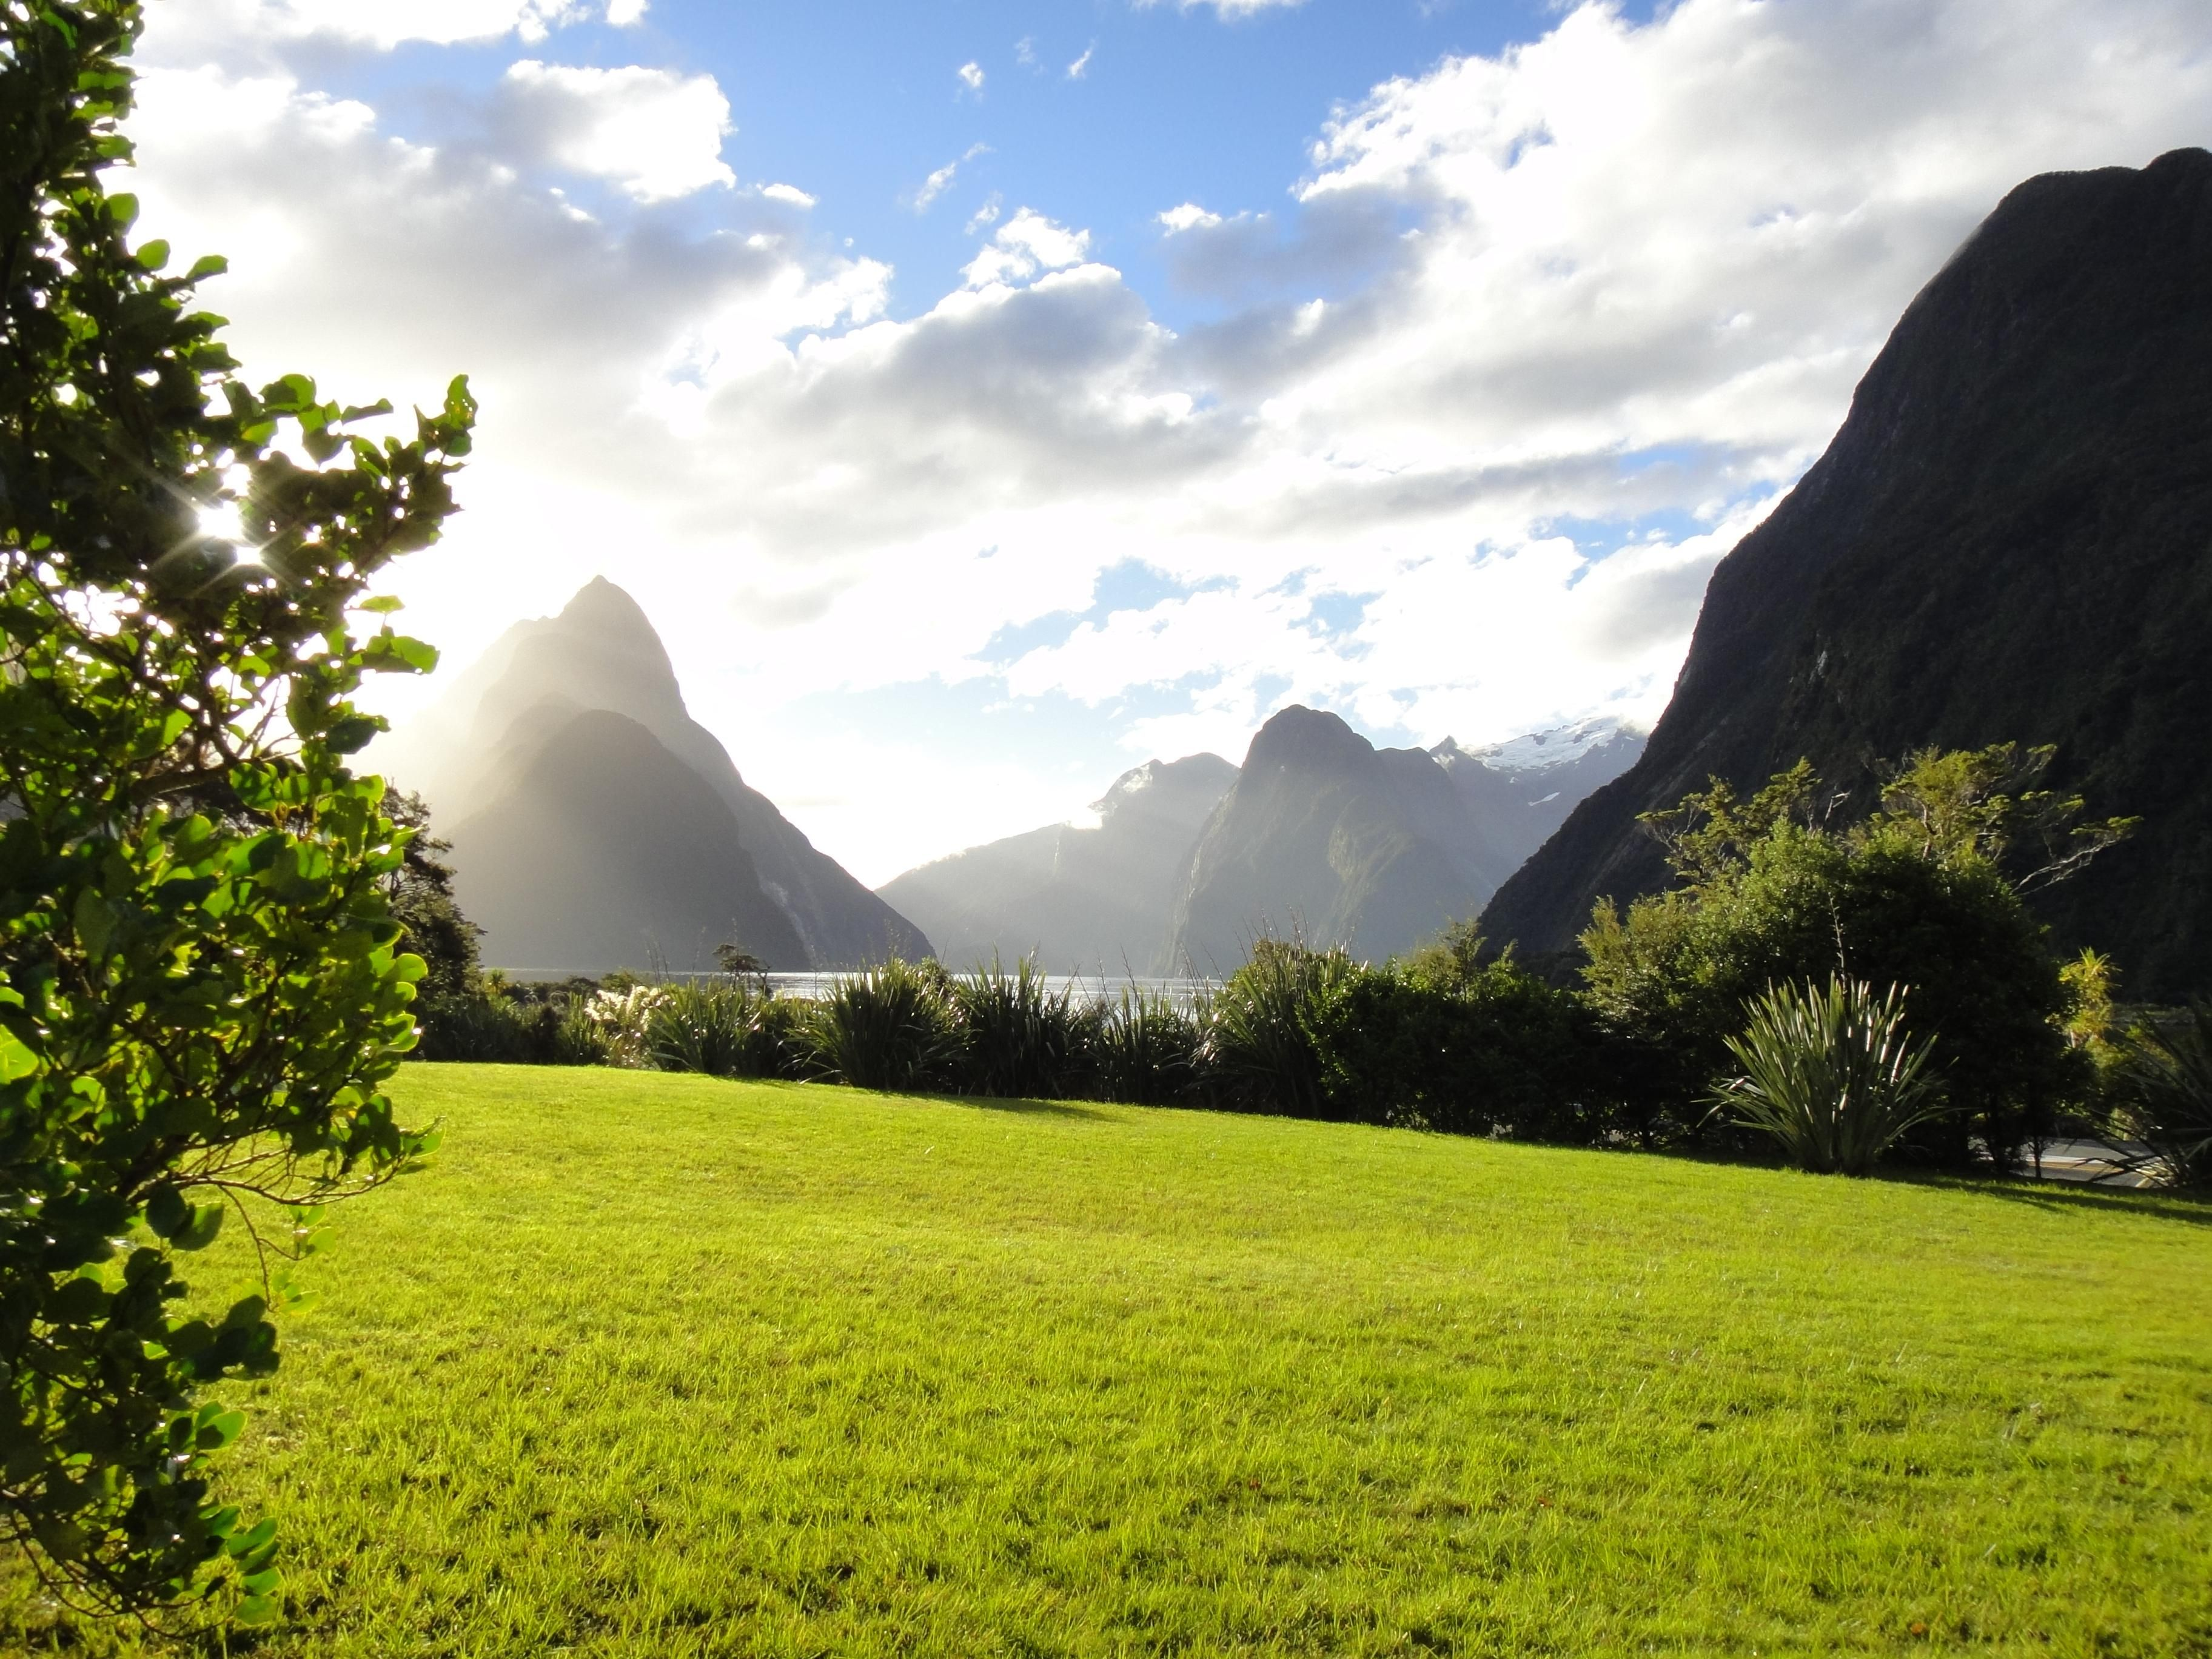 This Is Beautiful Unedited Shot My Friend Took While We Were Travelling New Zealand Milford Sound Is Incredible Oc Landscape Pictures Earthporn Landscape